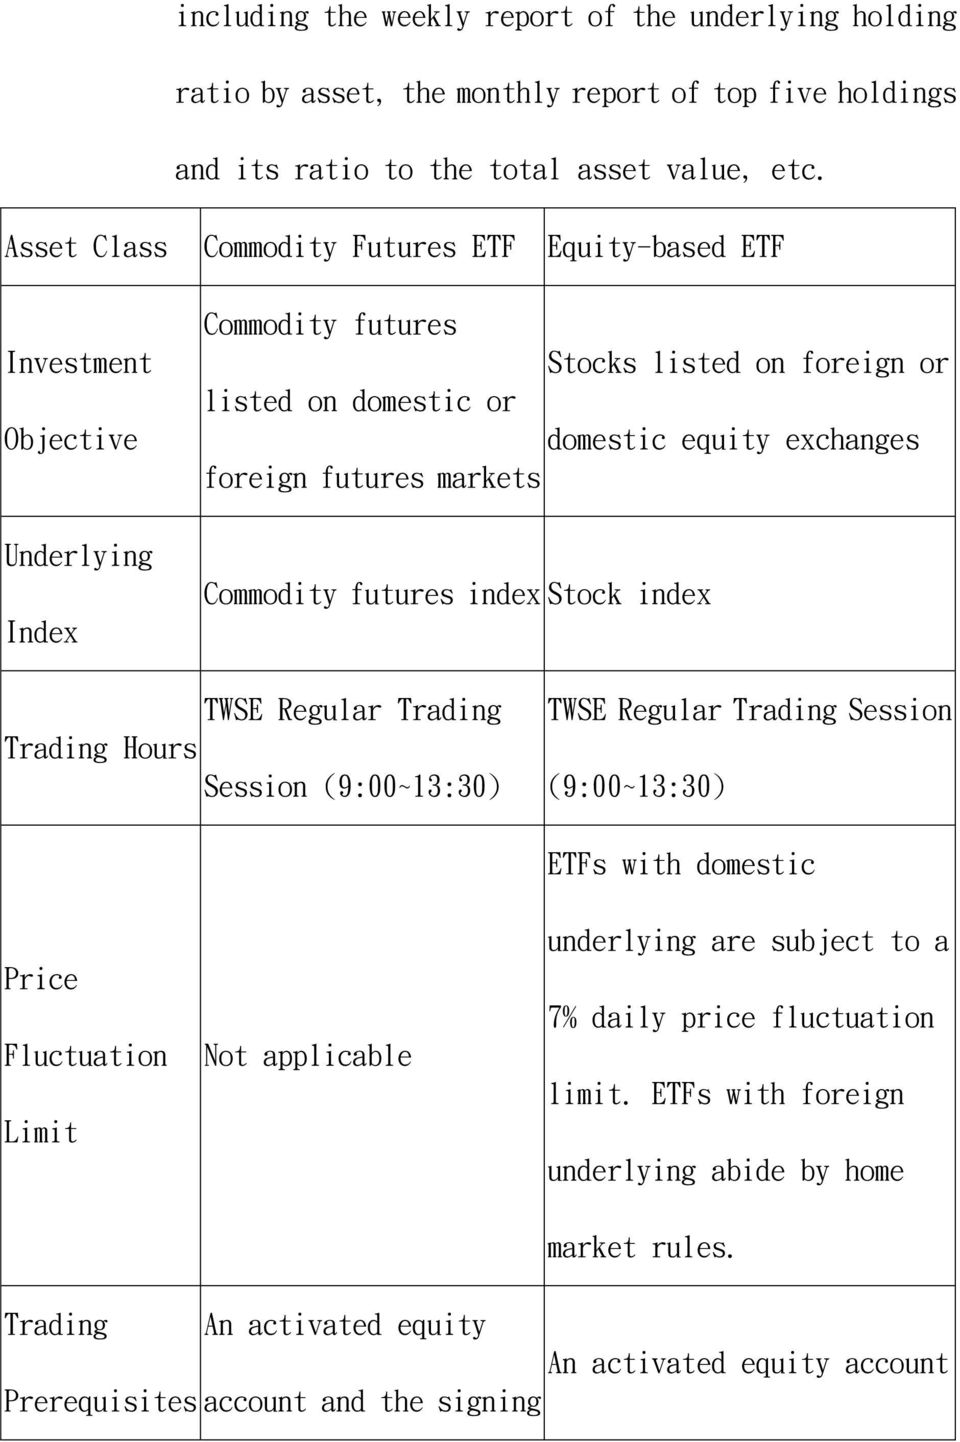 futures markets Commodity futures index Stock index TWSE Regular Trading Trading Hours Session (9:00~13:30) TWSE Regular Trading Session (9:00~13:30) Price Fluctuation Limit Not applicable